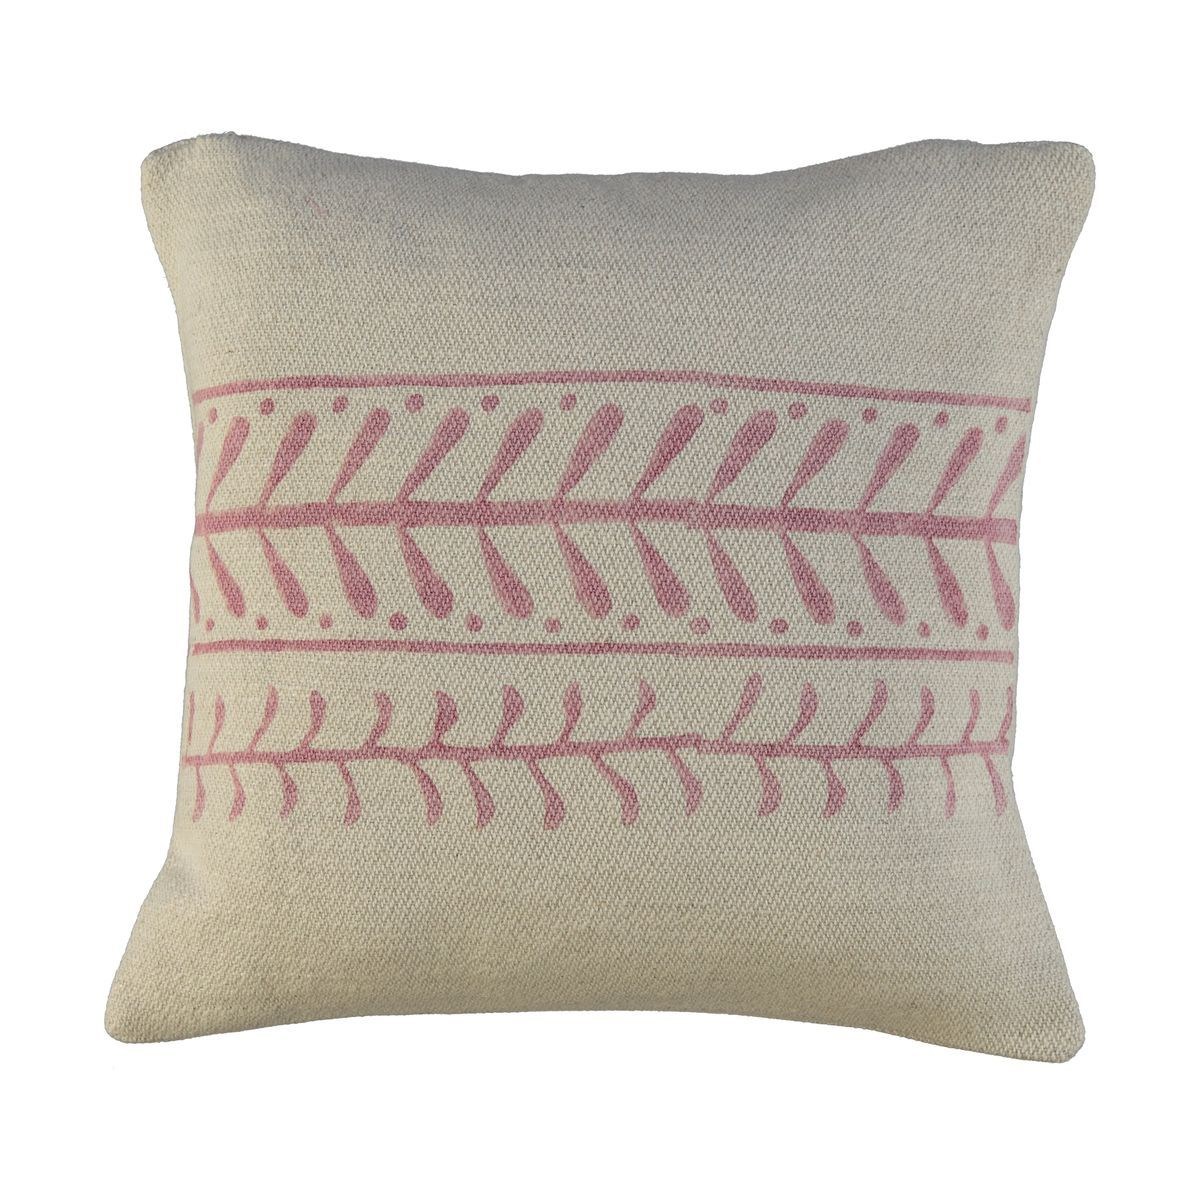 Cushion Cover / 15 Hand Printed - Dusty Rose